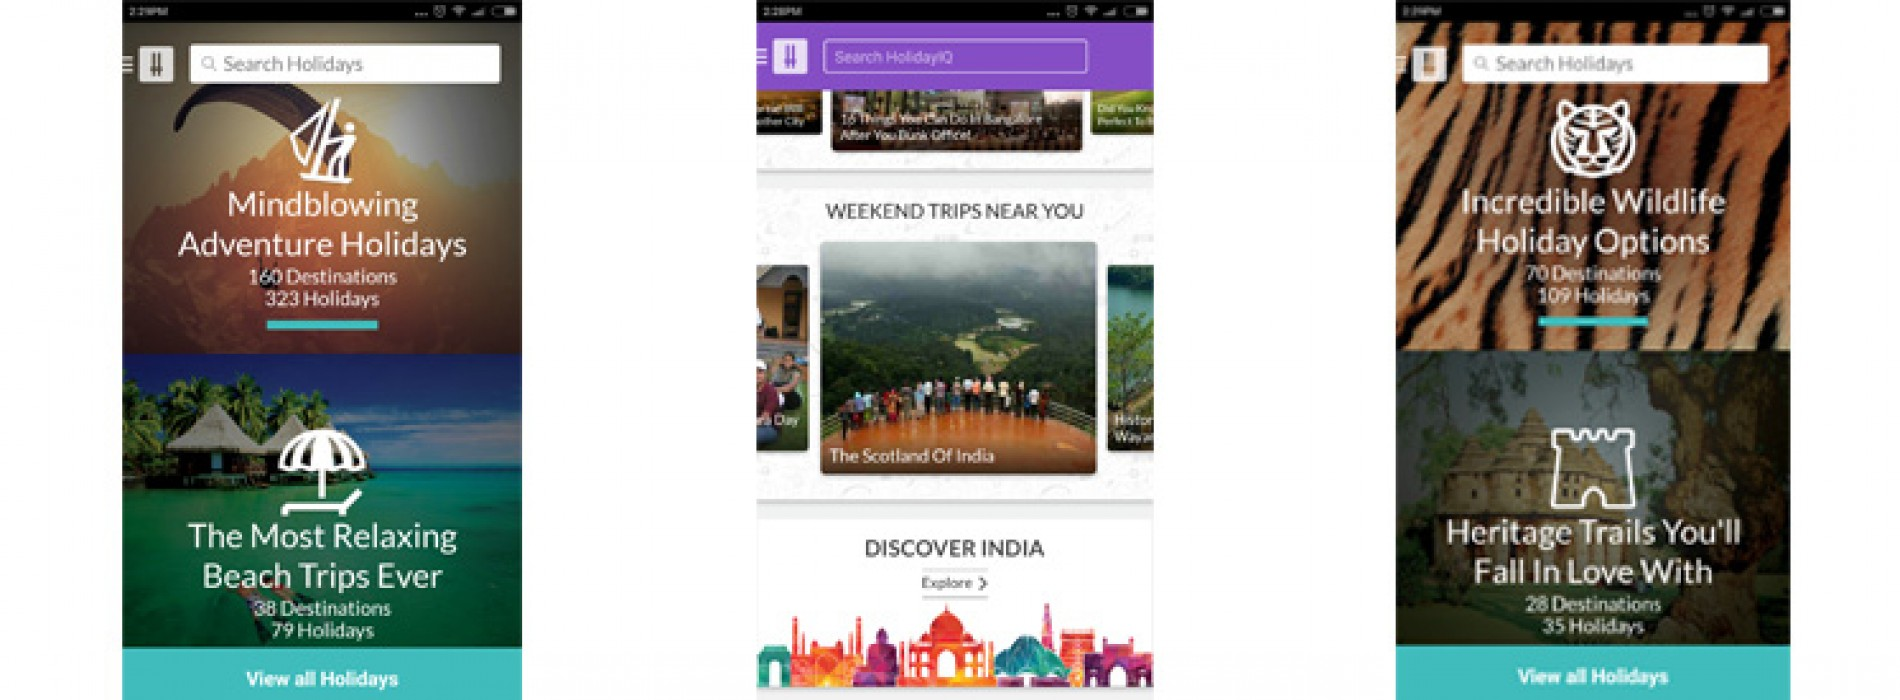 HolidayIQ.com launches India's first Mobile-only Holidays marketplace